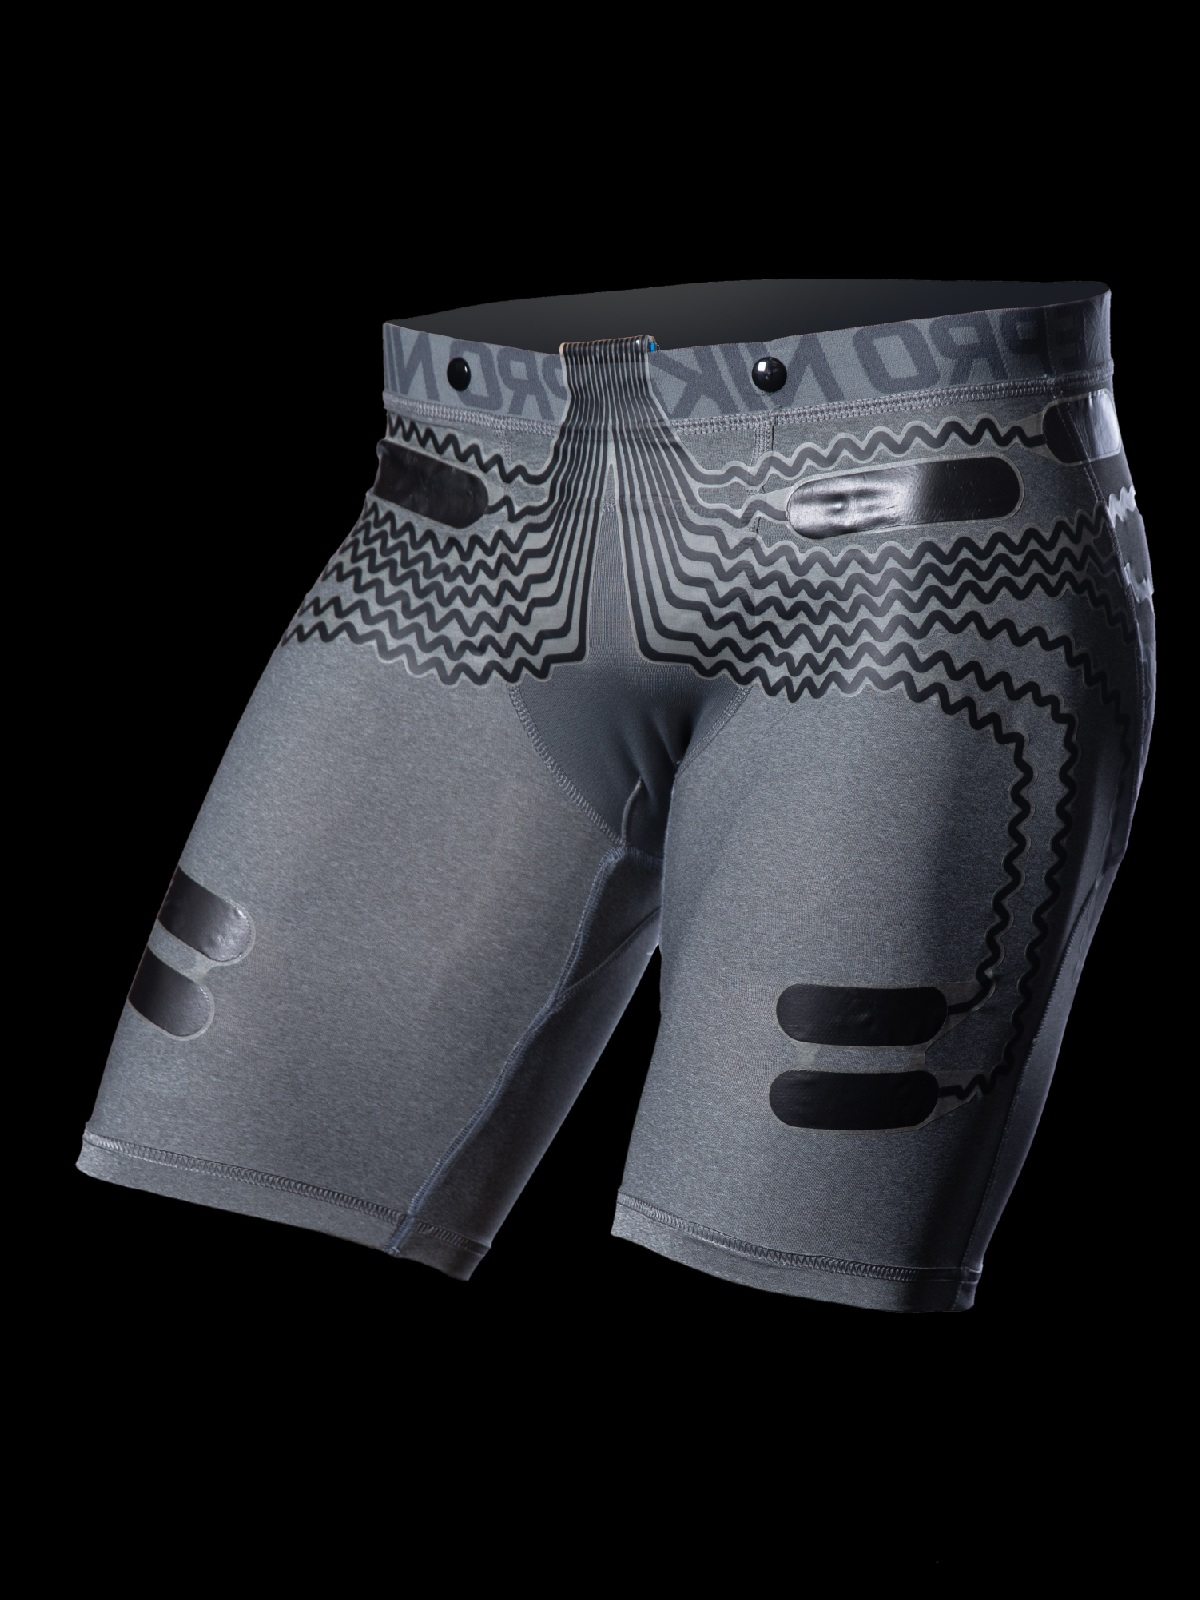 SENSE3 - Compression shorts with built-in EMG sensors